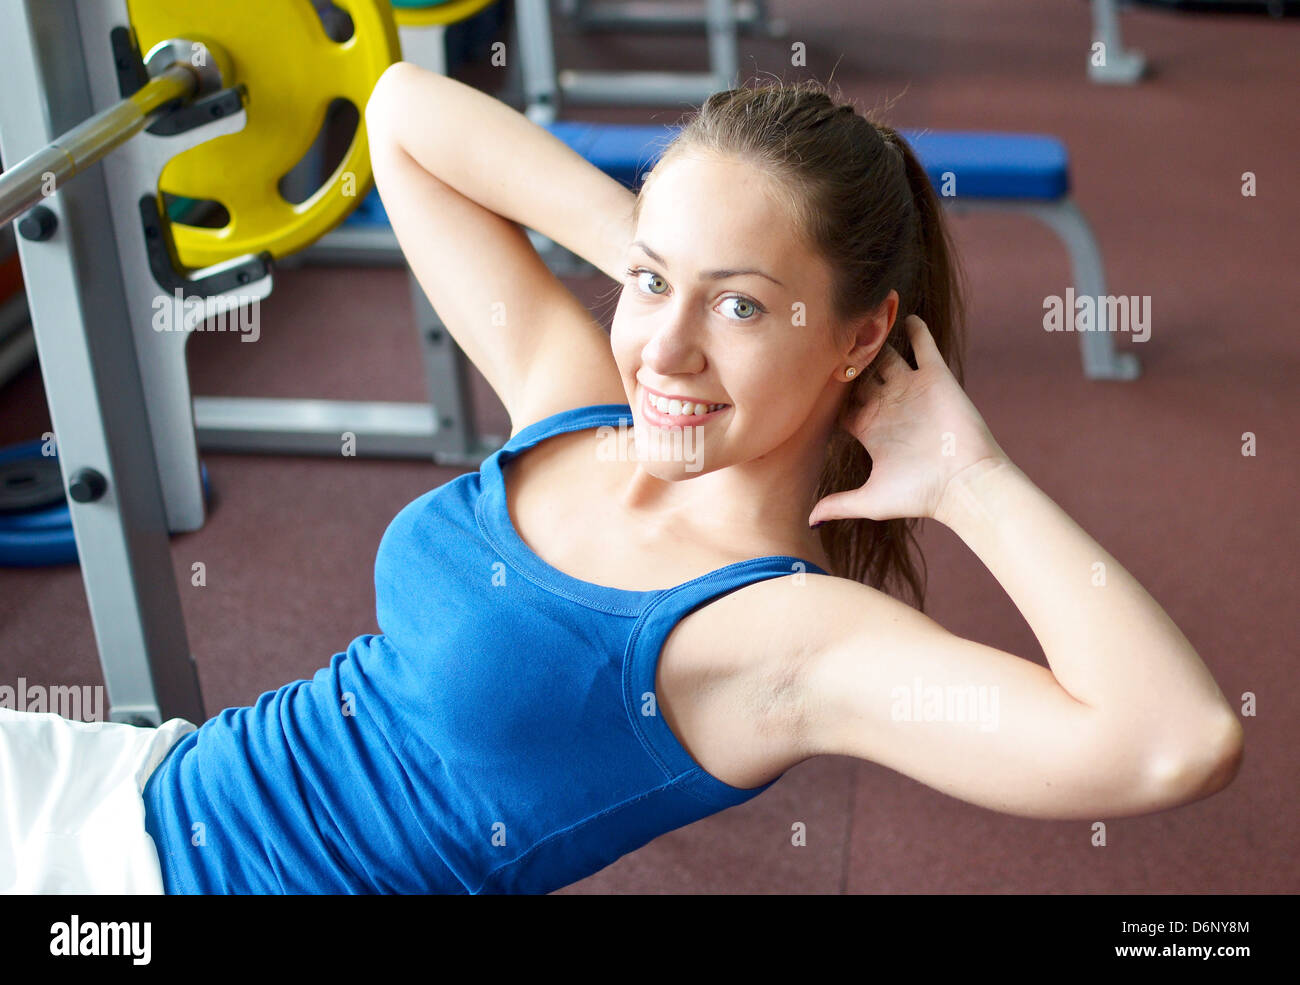 young pretty girl working out in a gym - Stock Image